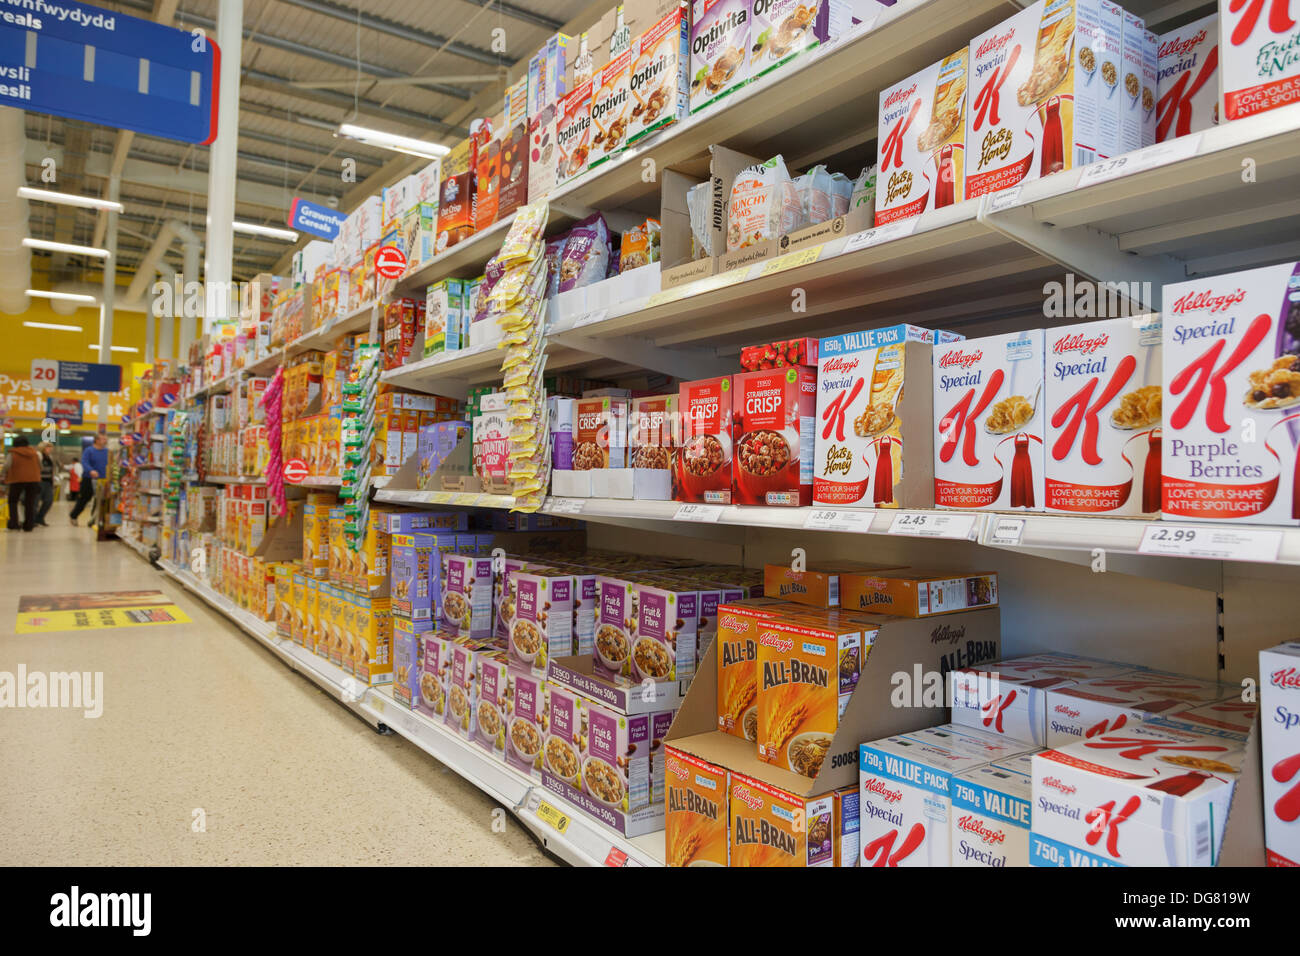 A variety of boxes of own brand and Kellog's breakfast cereals for sale on Tesco's supermarket shelves. UK, Britain - Stock Image